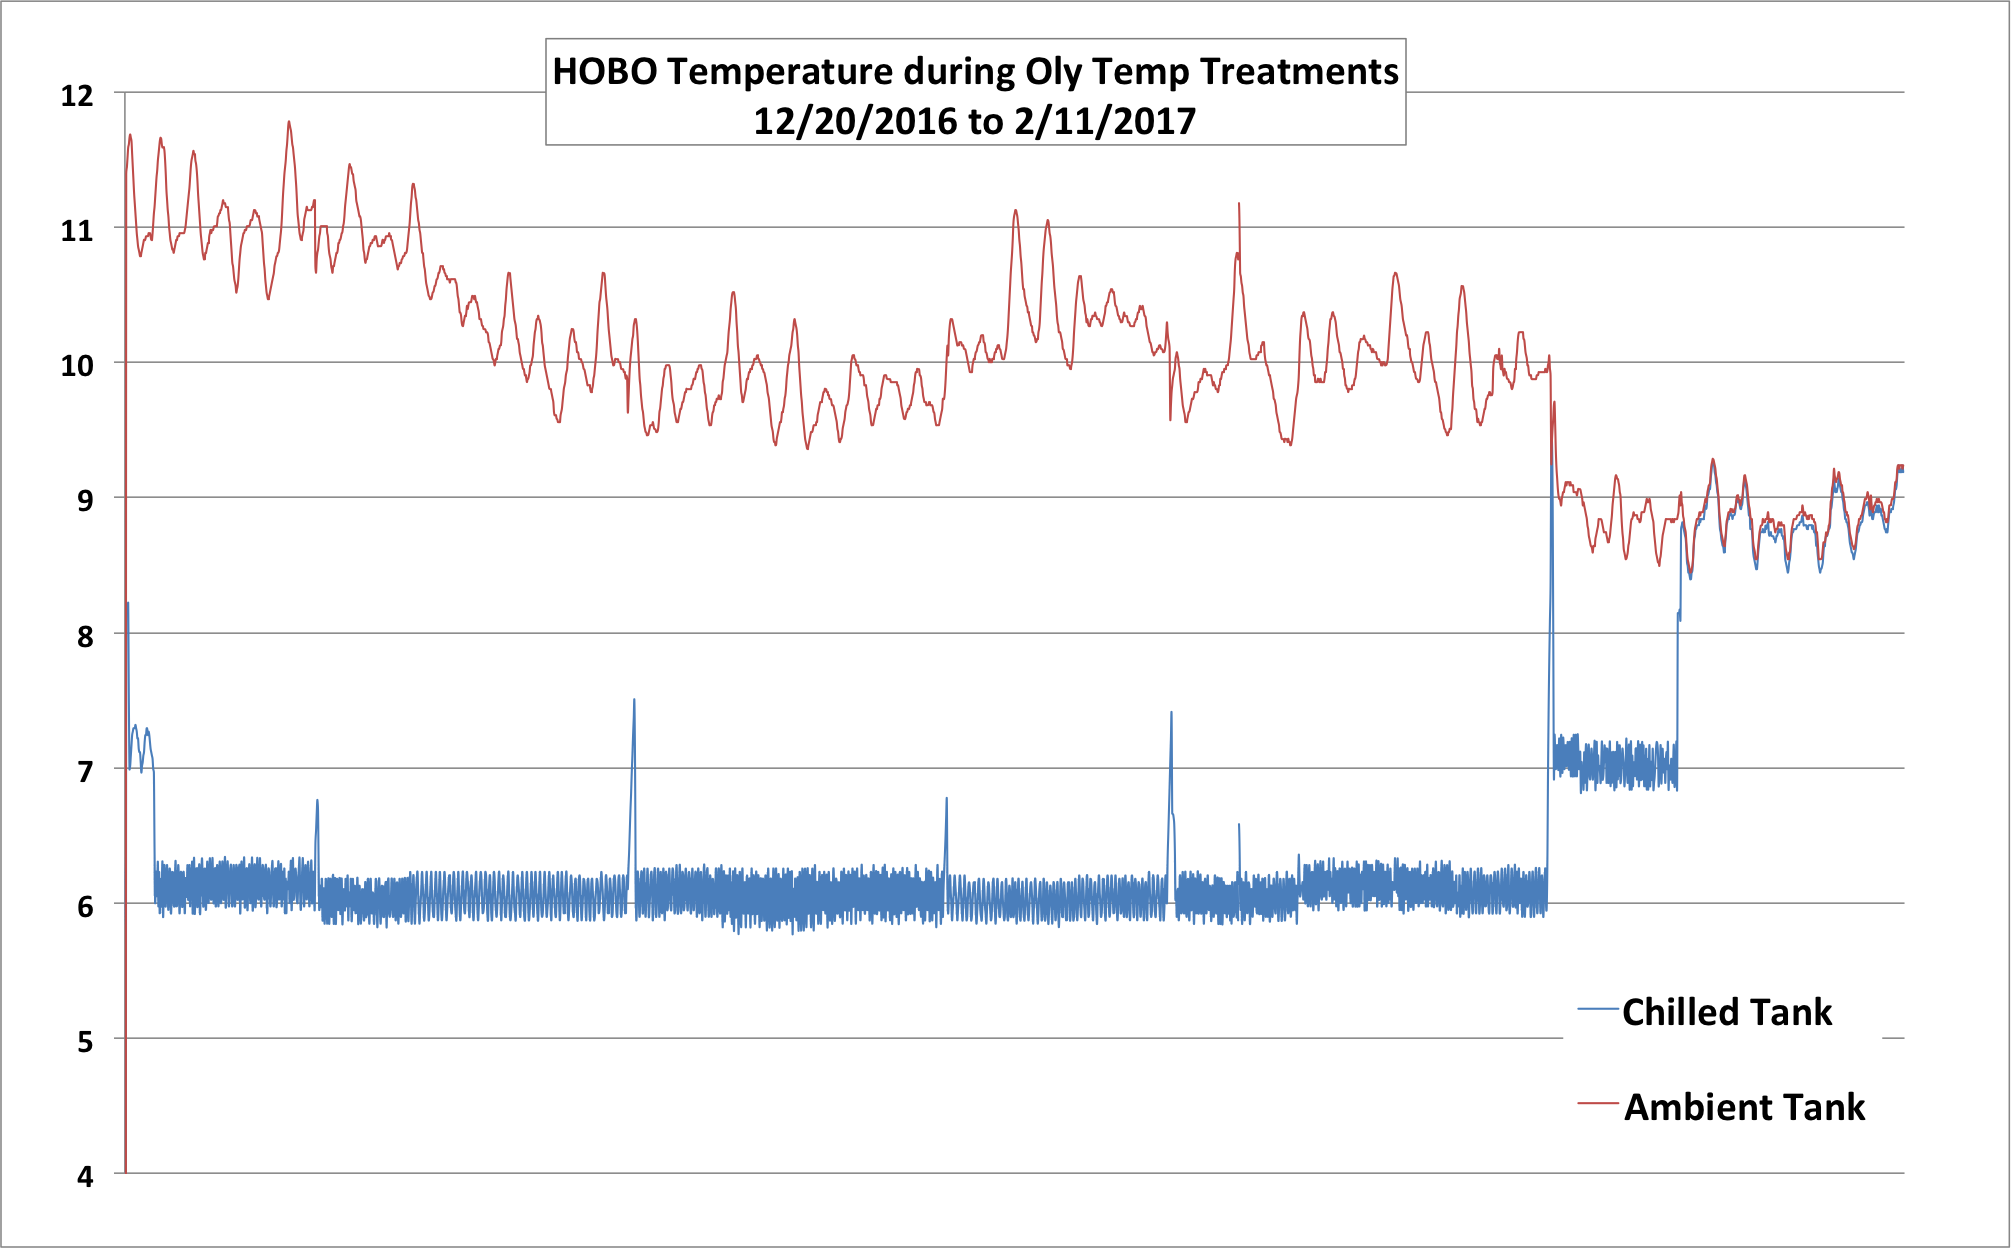 HOBO Temp data during temp treatments